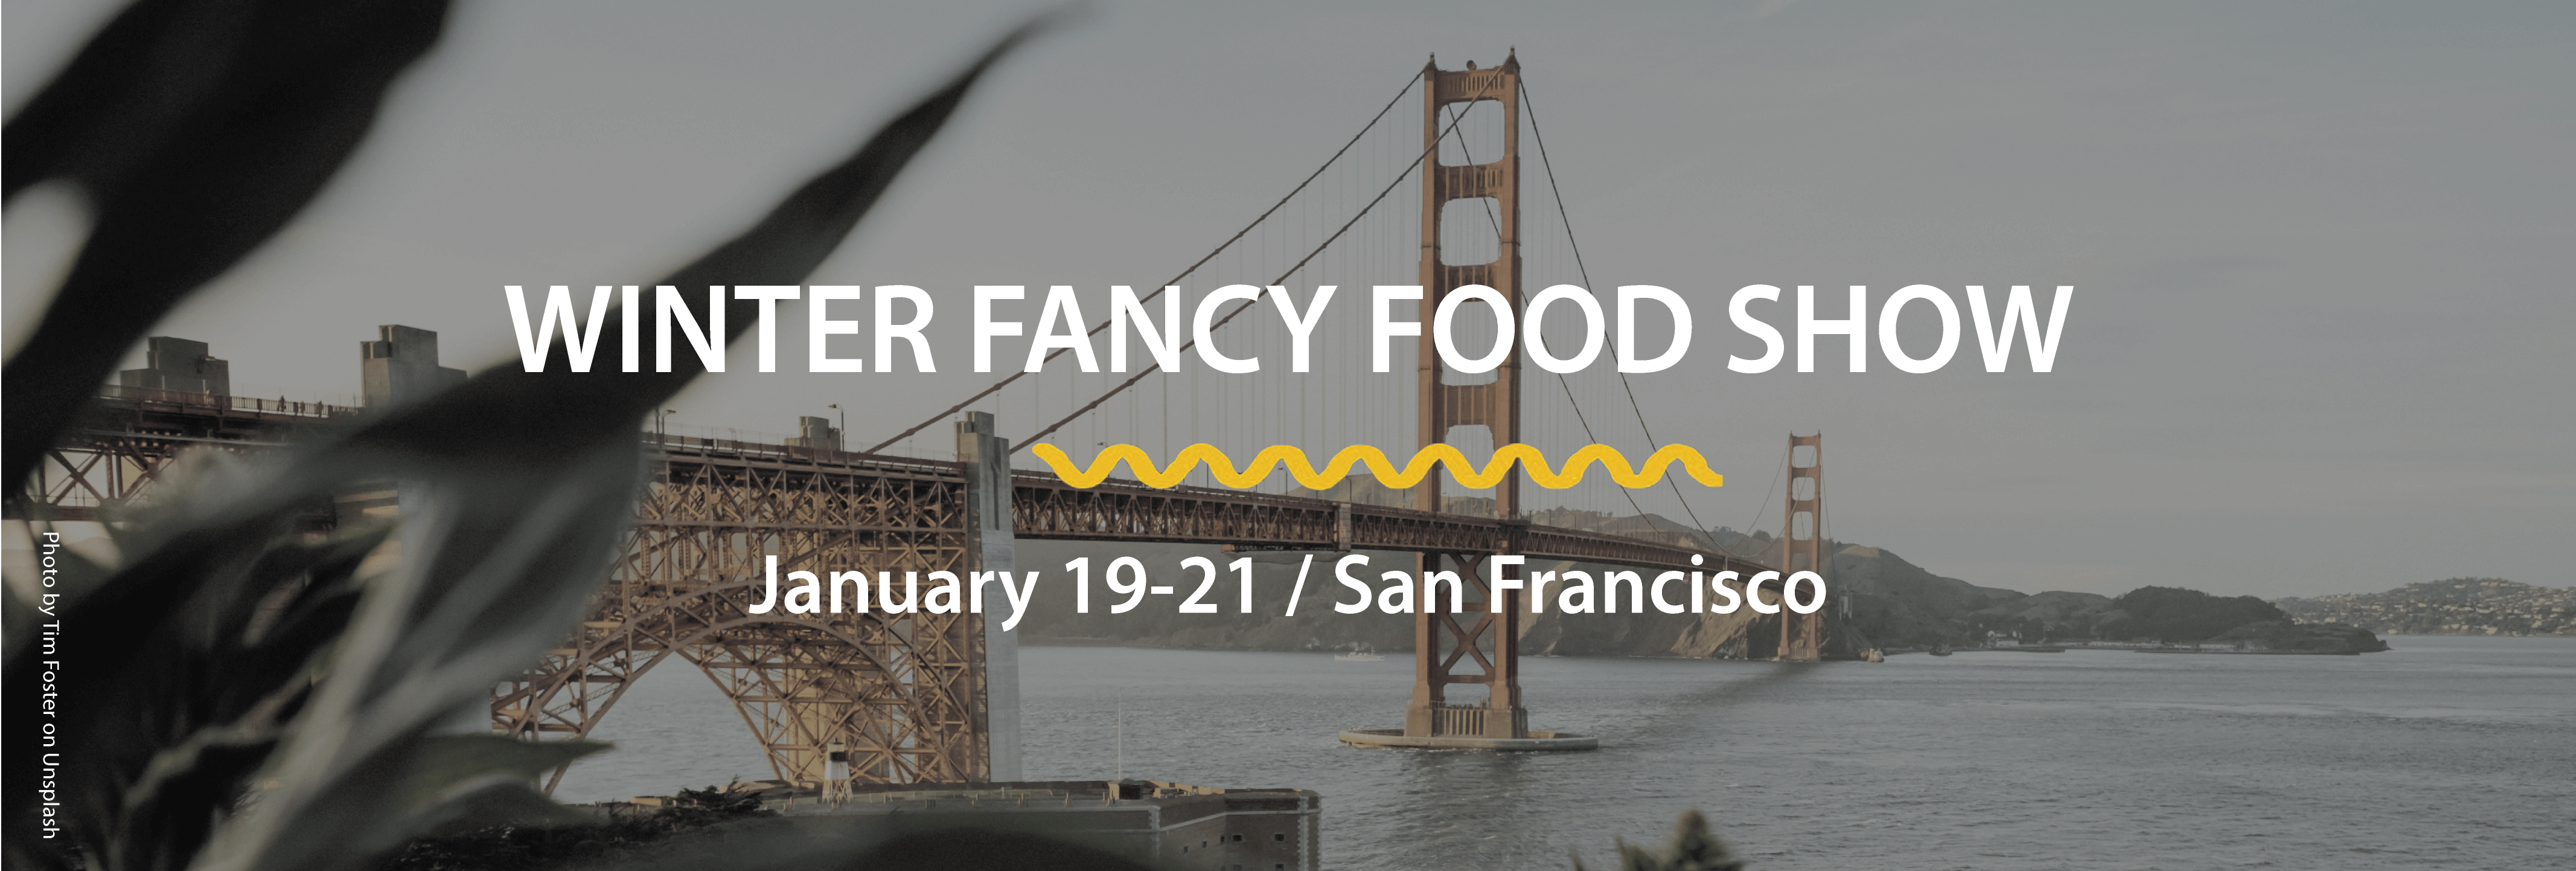 Winter Fancy Food Show - Thomas Export